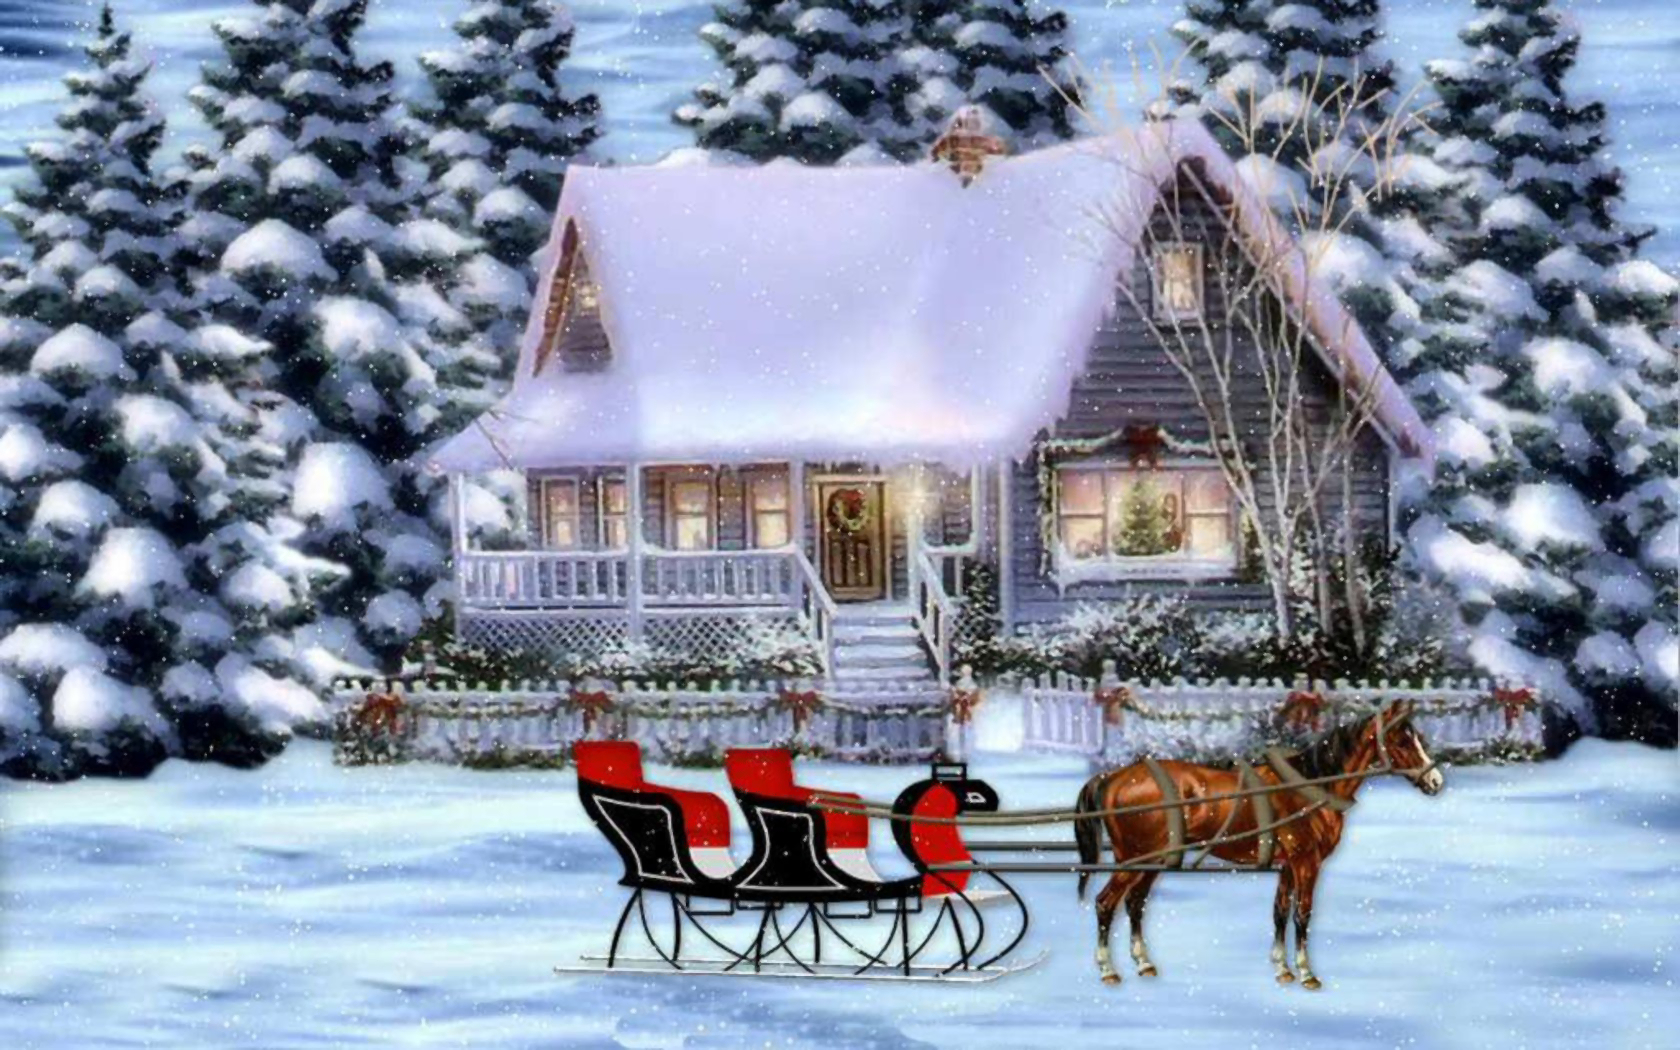 Winter Holiday Scene Wallpaper And Background Image 1680x1050 Id 696782 Wallpaper Abyss